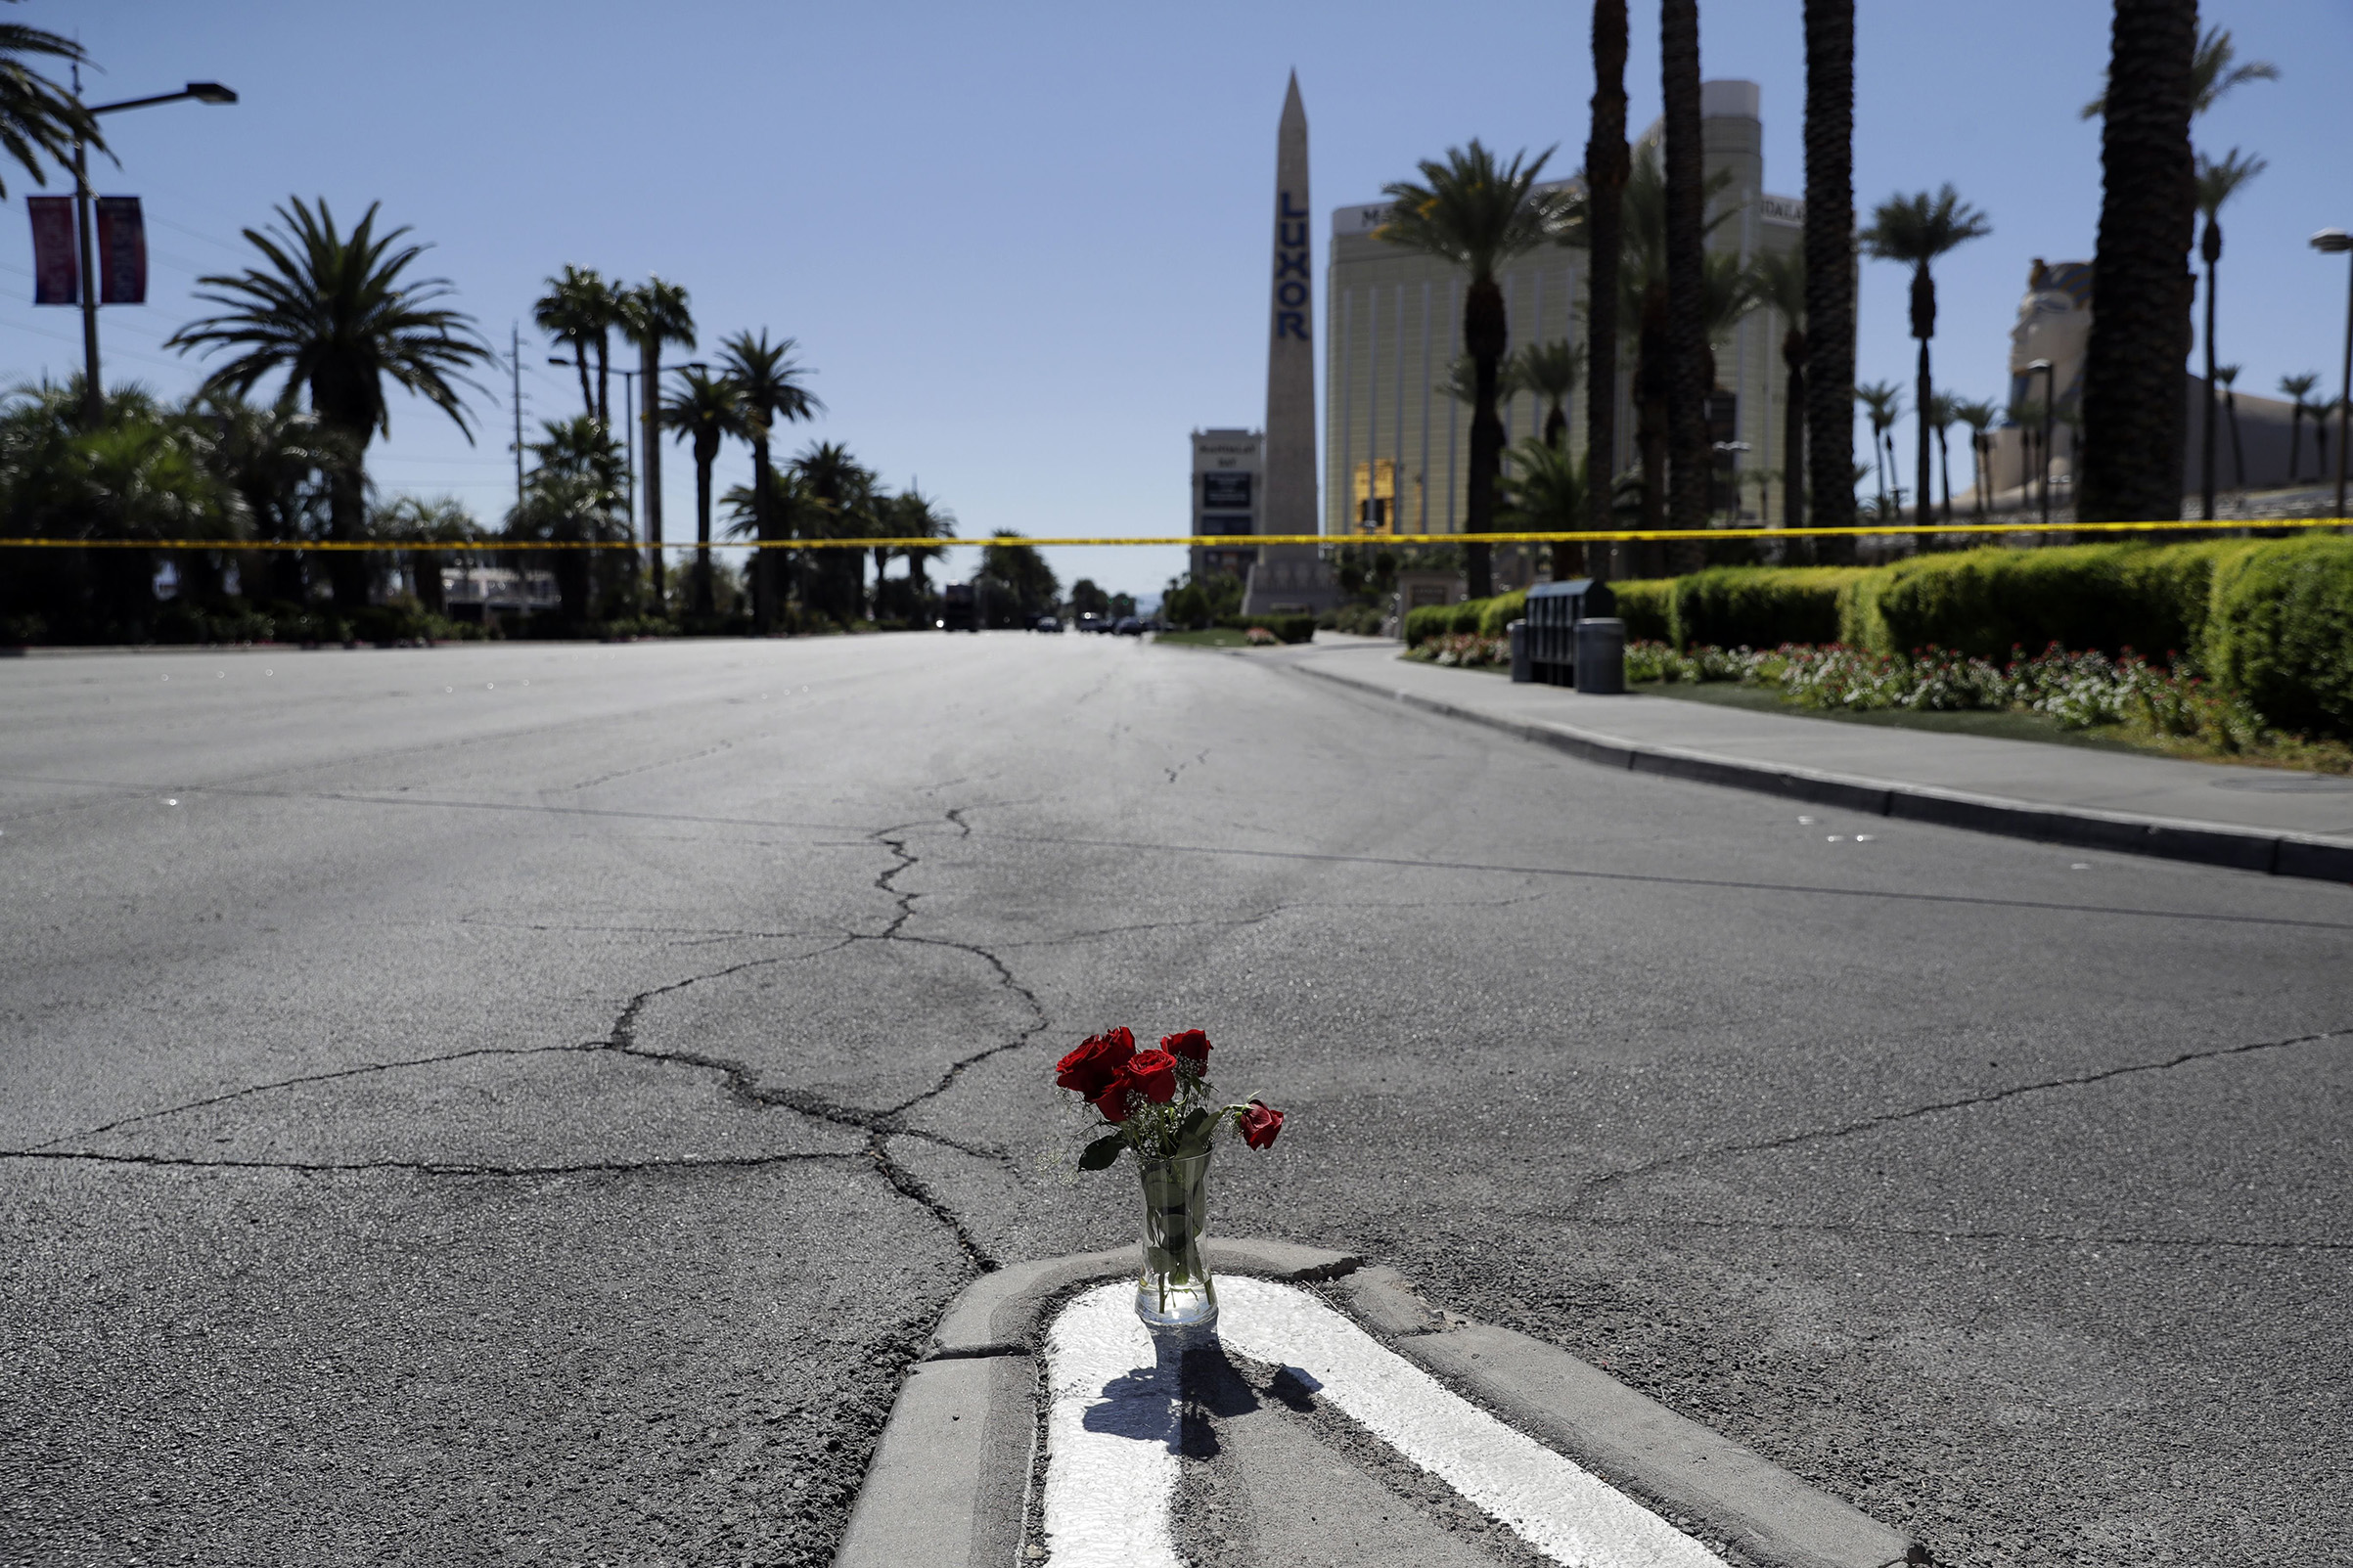 Flowers are placed near the scene of a mass shooting, that occurred at a music festival near the Mandalay Bay resort in Las Vegas on Sunday Oct. 2, 2017.